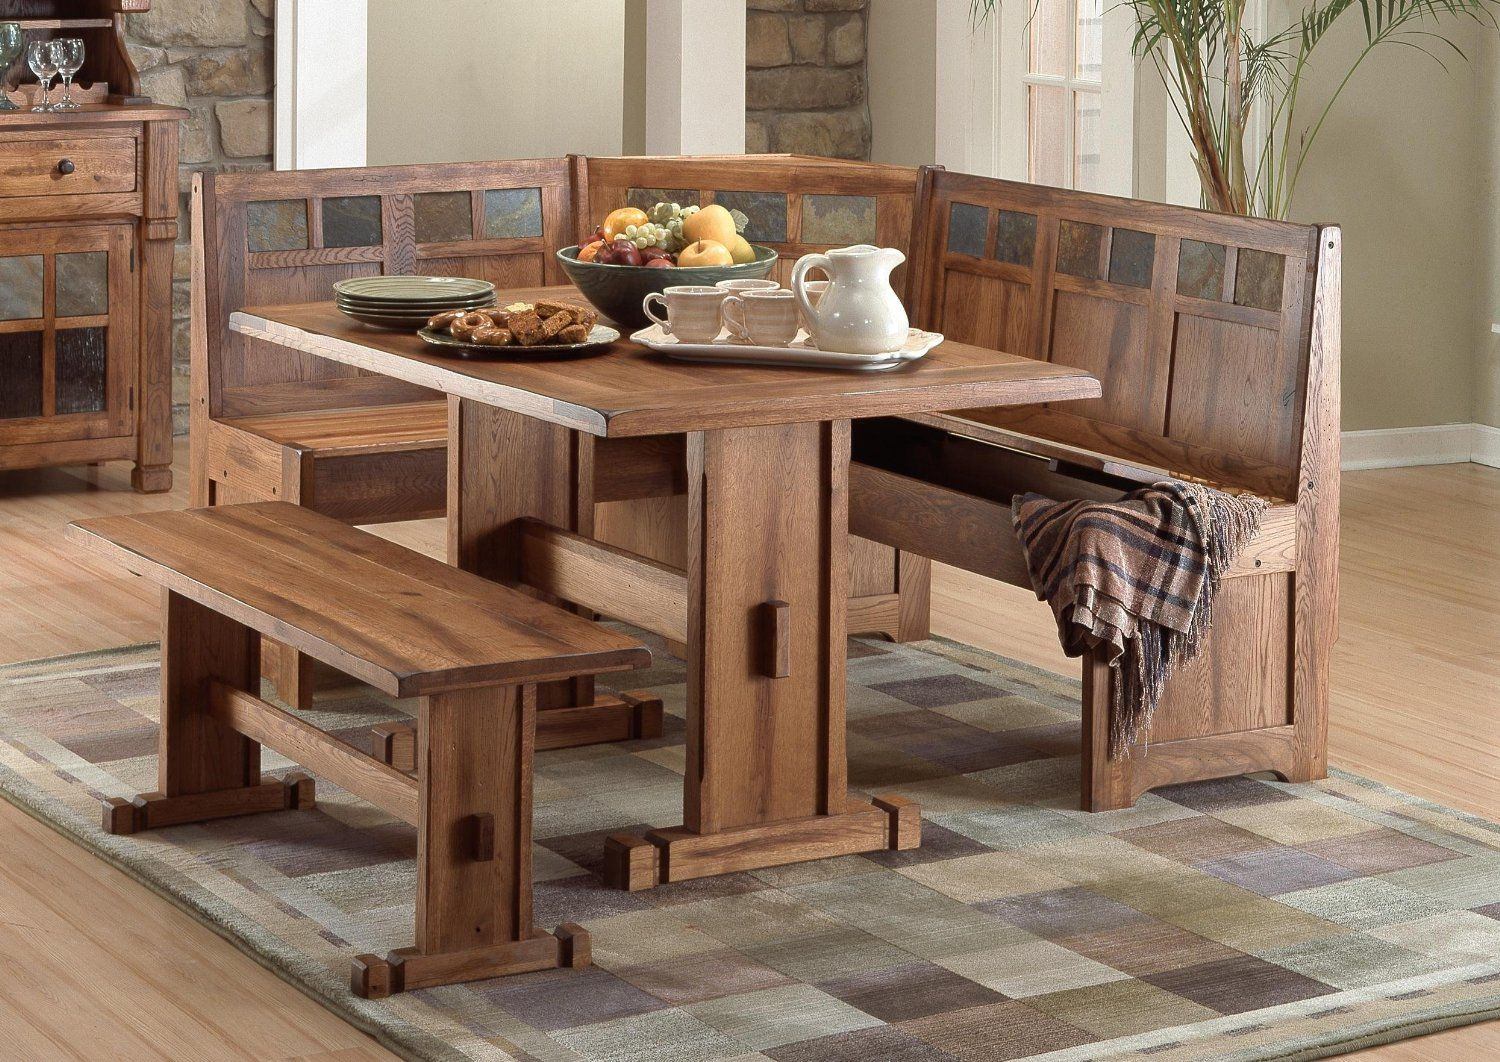 Kitchen Table With Bench wood kitchen table with bench seating designs ideas | dining bench